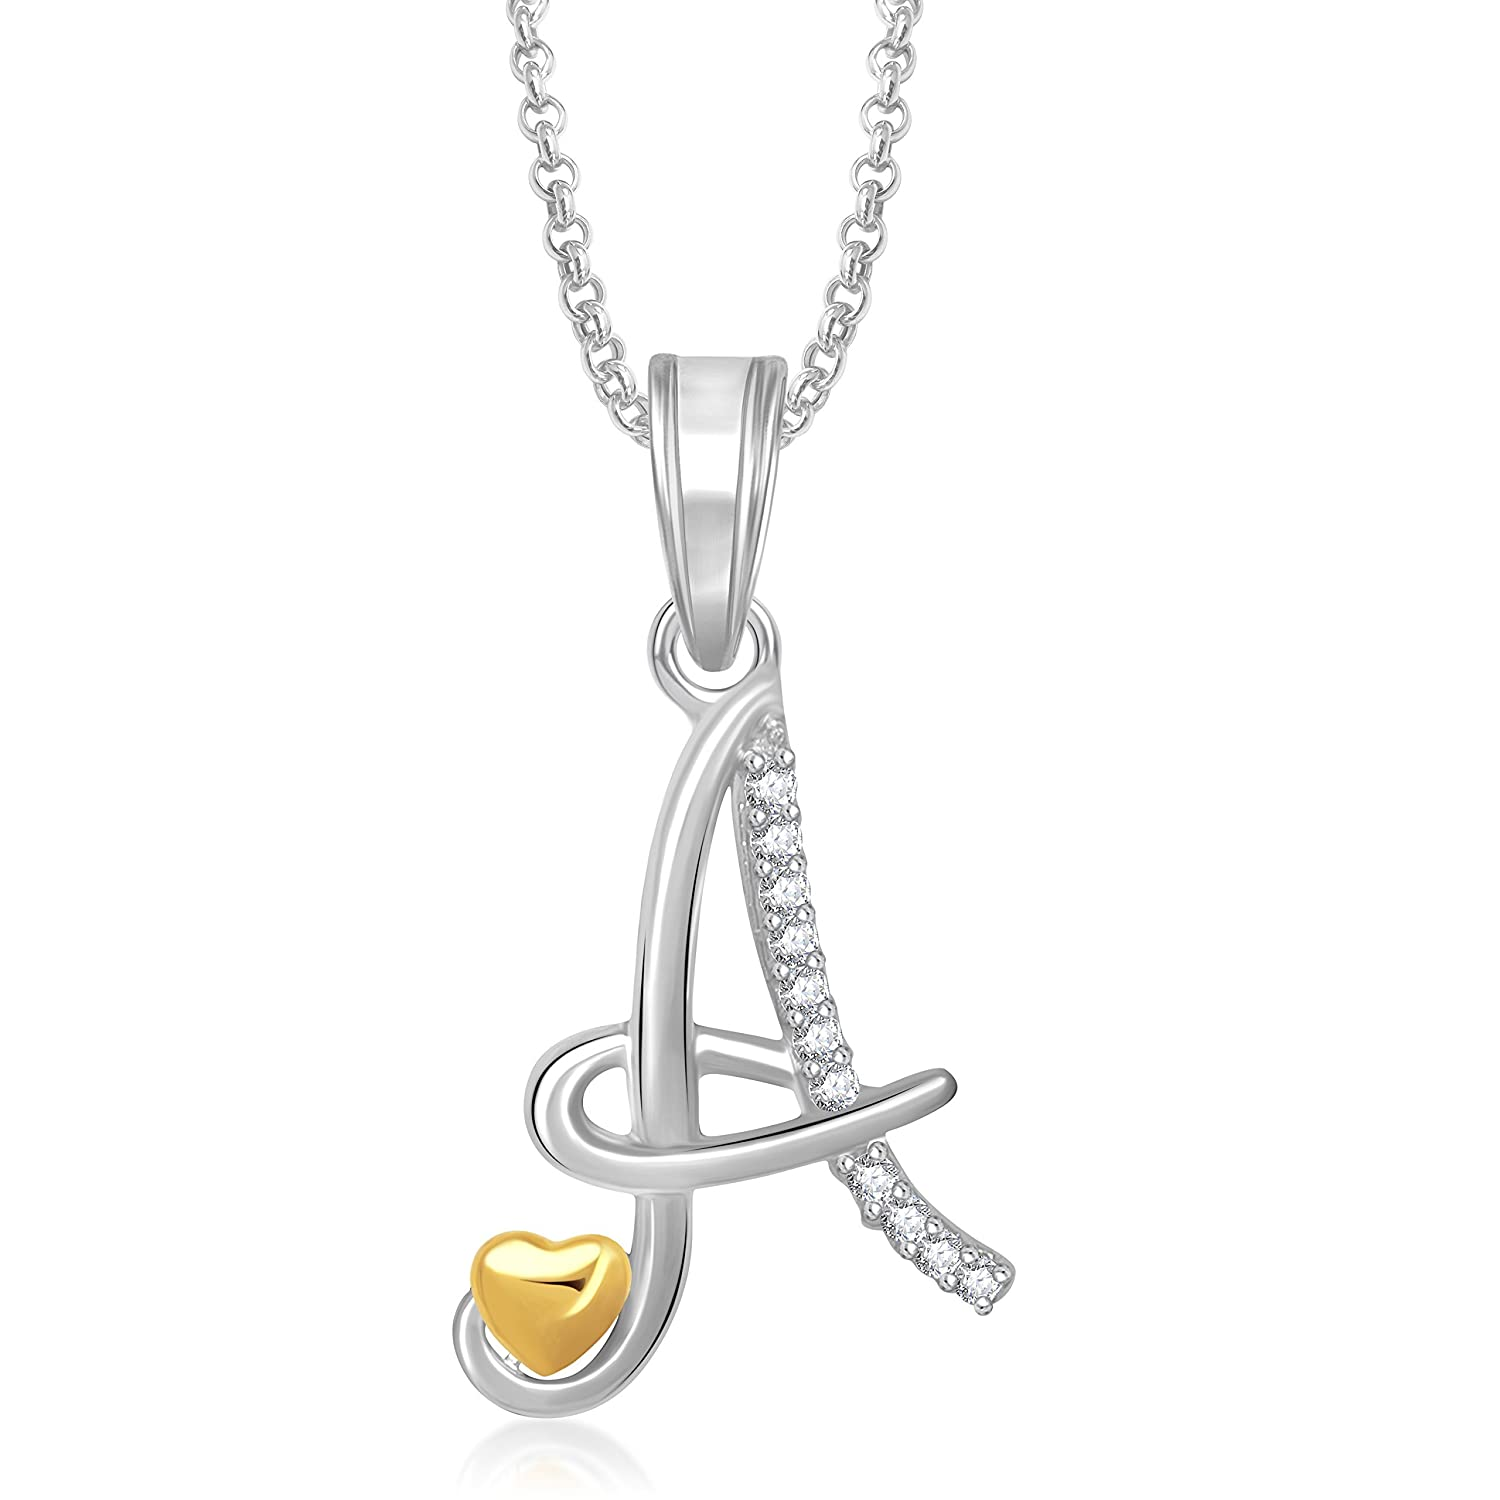 72c76134116ff Buy Meenaz Silver Gold Plated  A  Letter Unisex Pendants With Chain  Jewellery Set - 339 Online at Low Prices in India